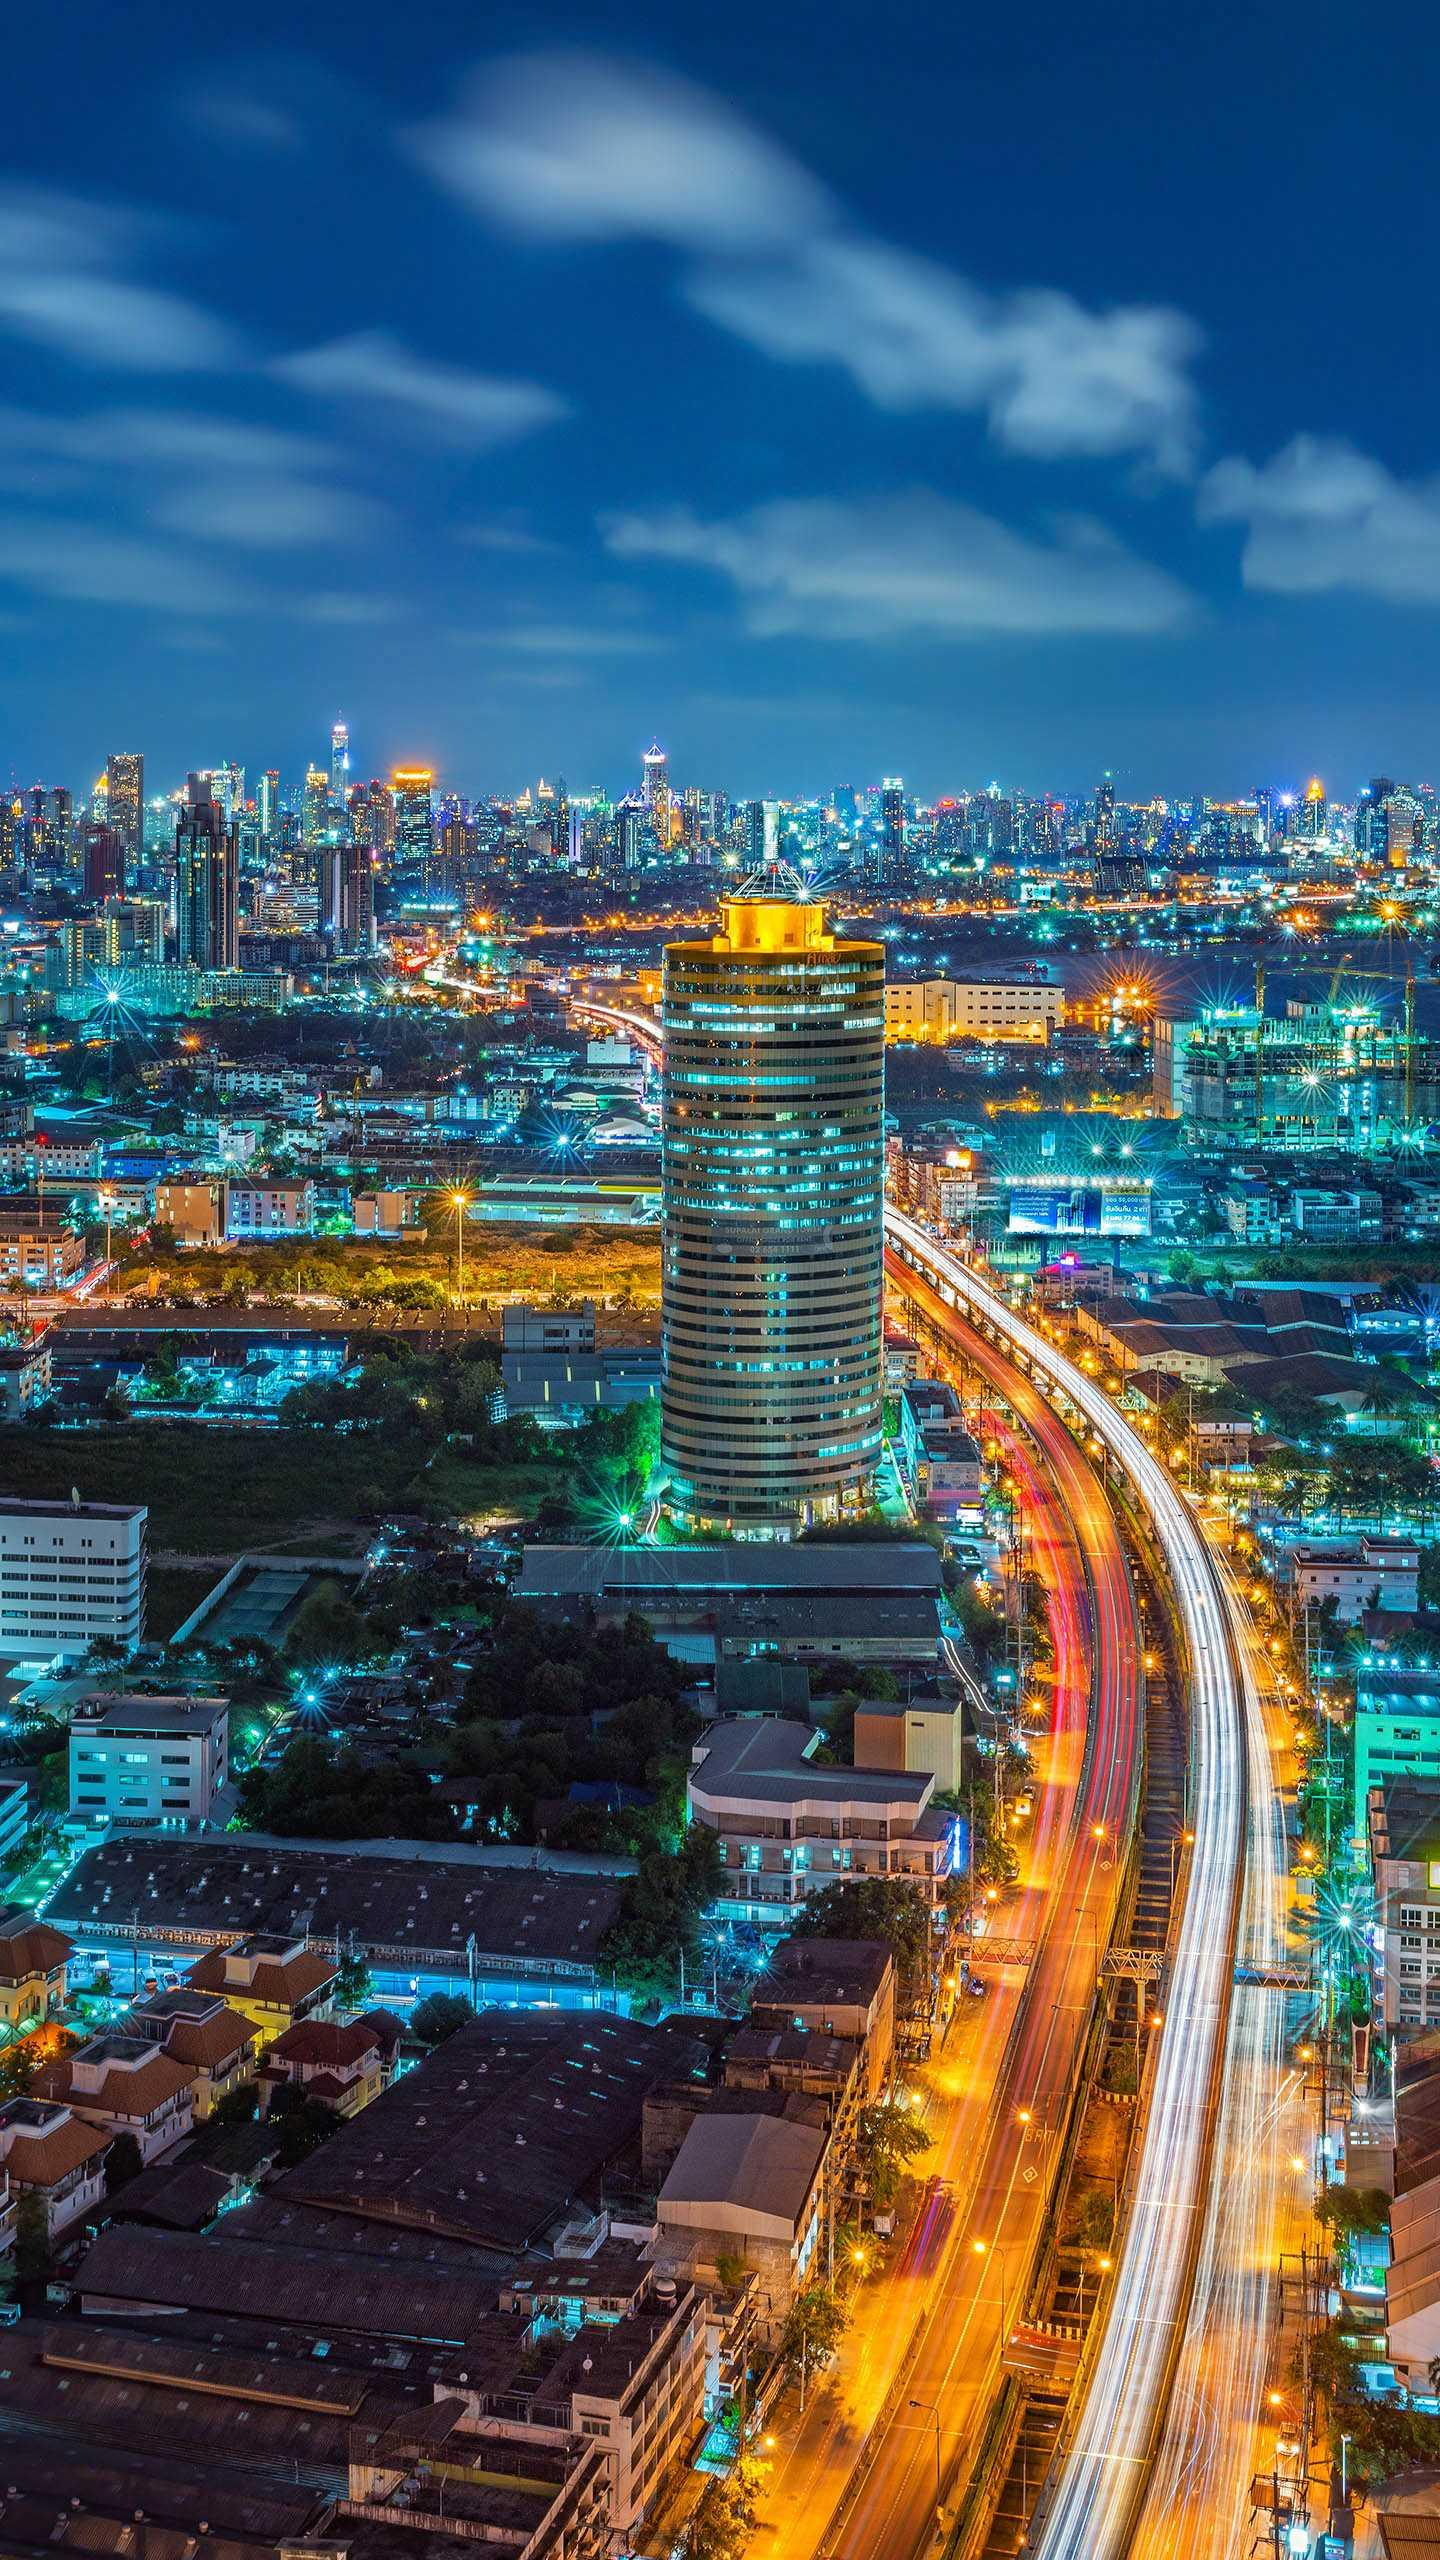 Thailand is one of the first choices for many people to go abroad for the first time. What should you pay attention to?